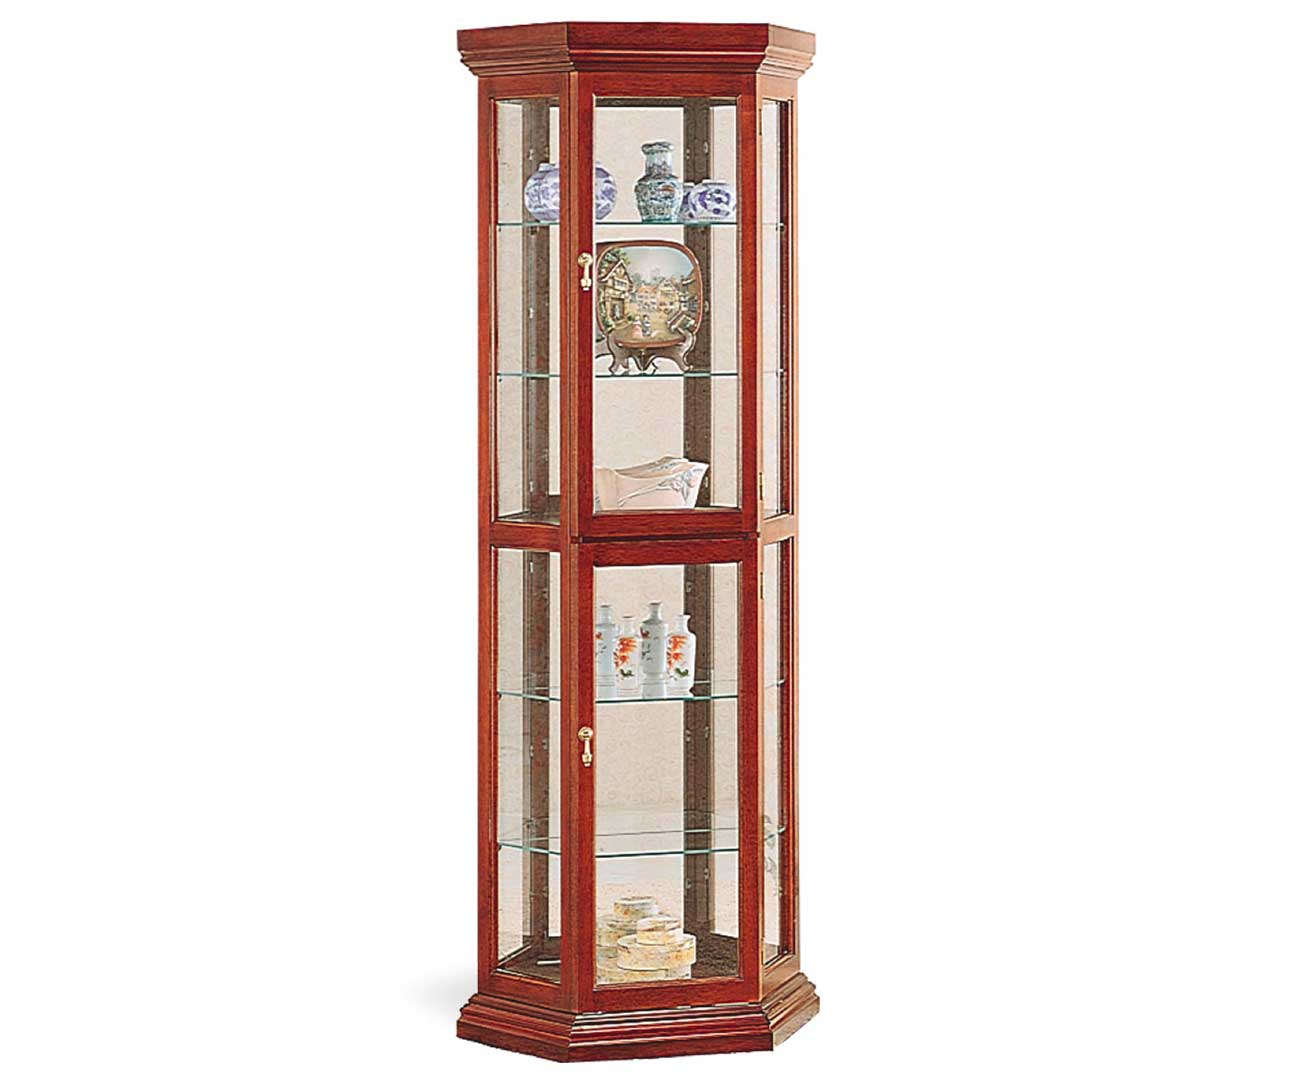 Tall Corner Display Cabinet With Glass Doors Divided Into Two Upper regarding dimensions 1300 X 1077